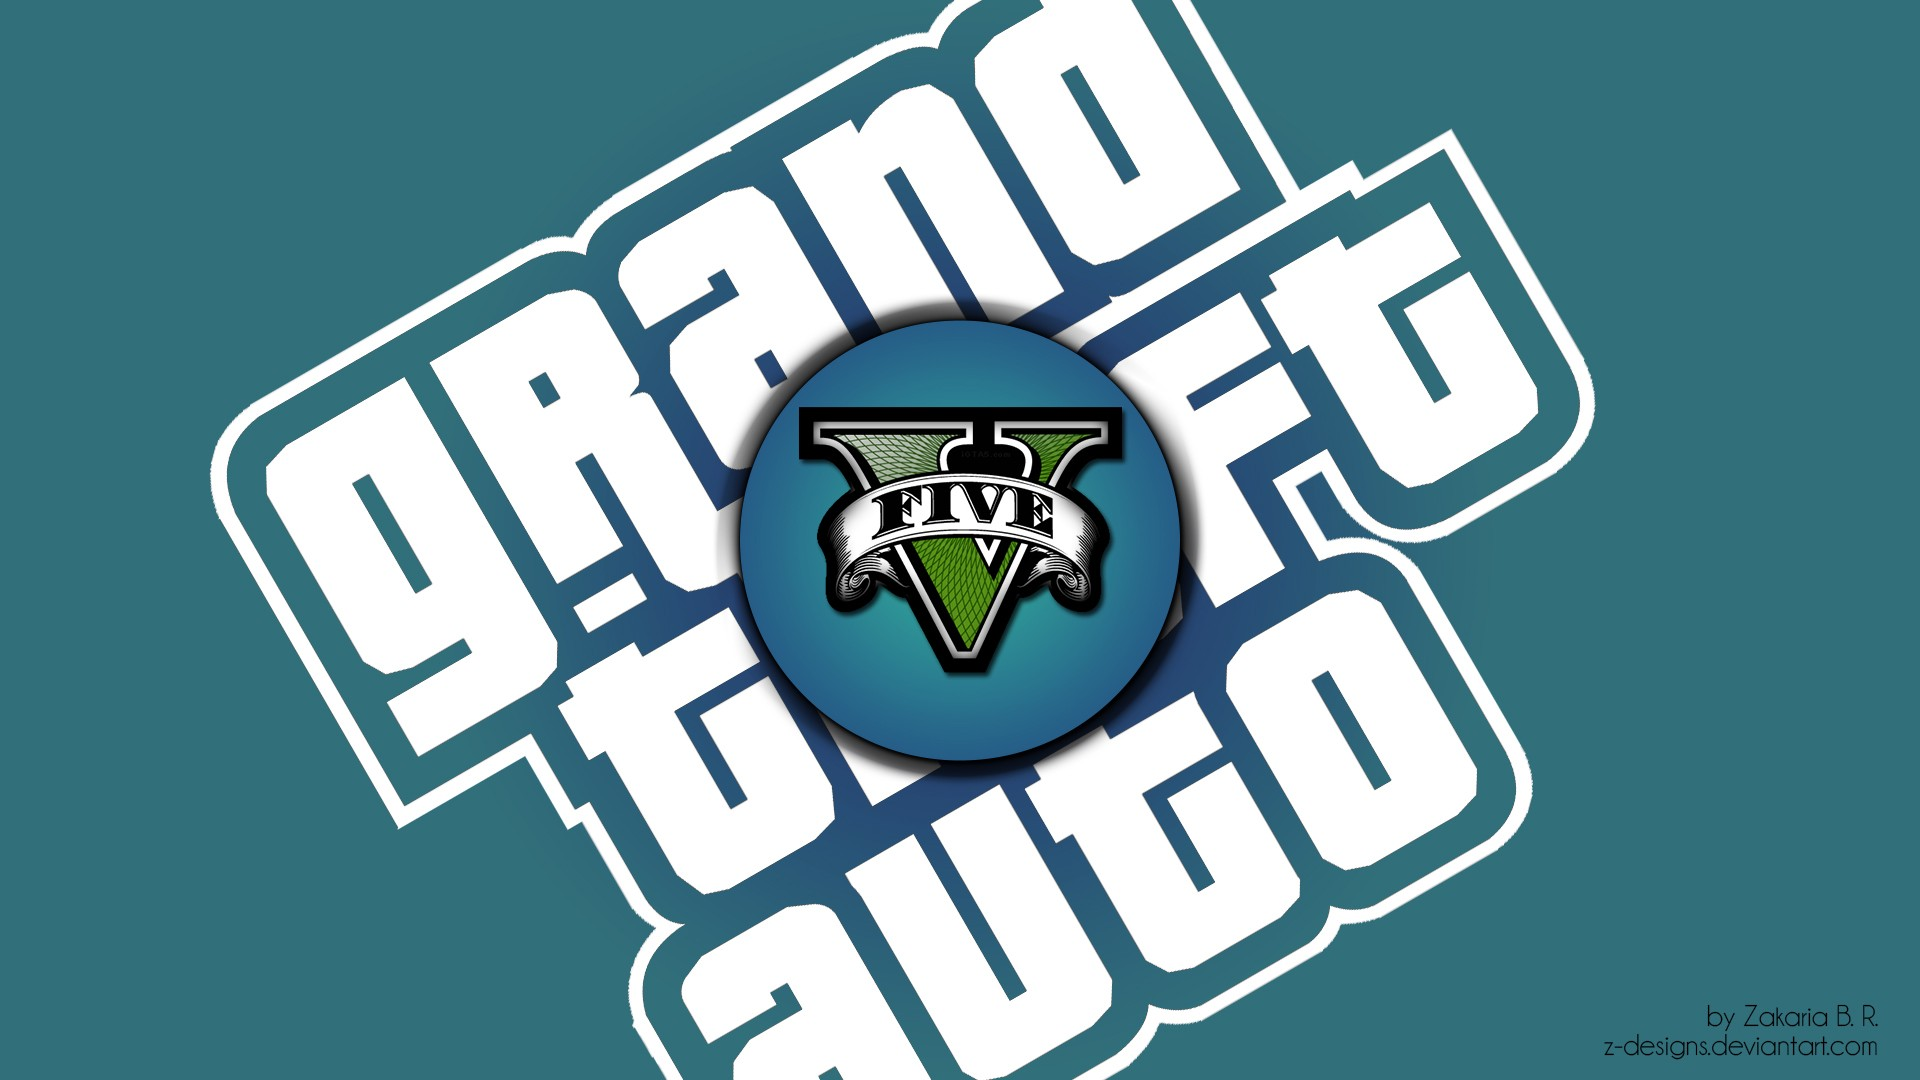 Grand Theft Auto zdesigns GTA V wallpaper 1920x1080 218837 1920x1080